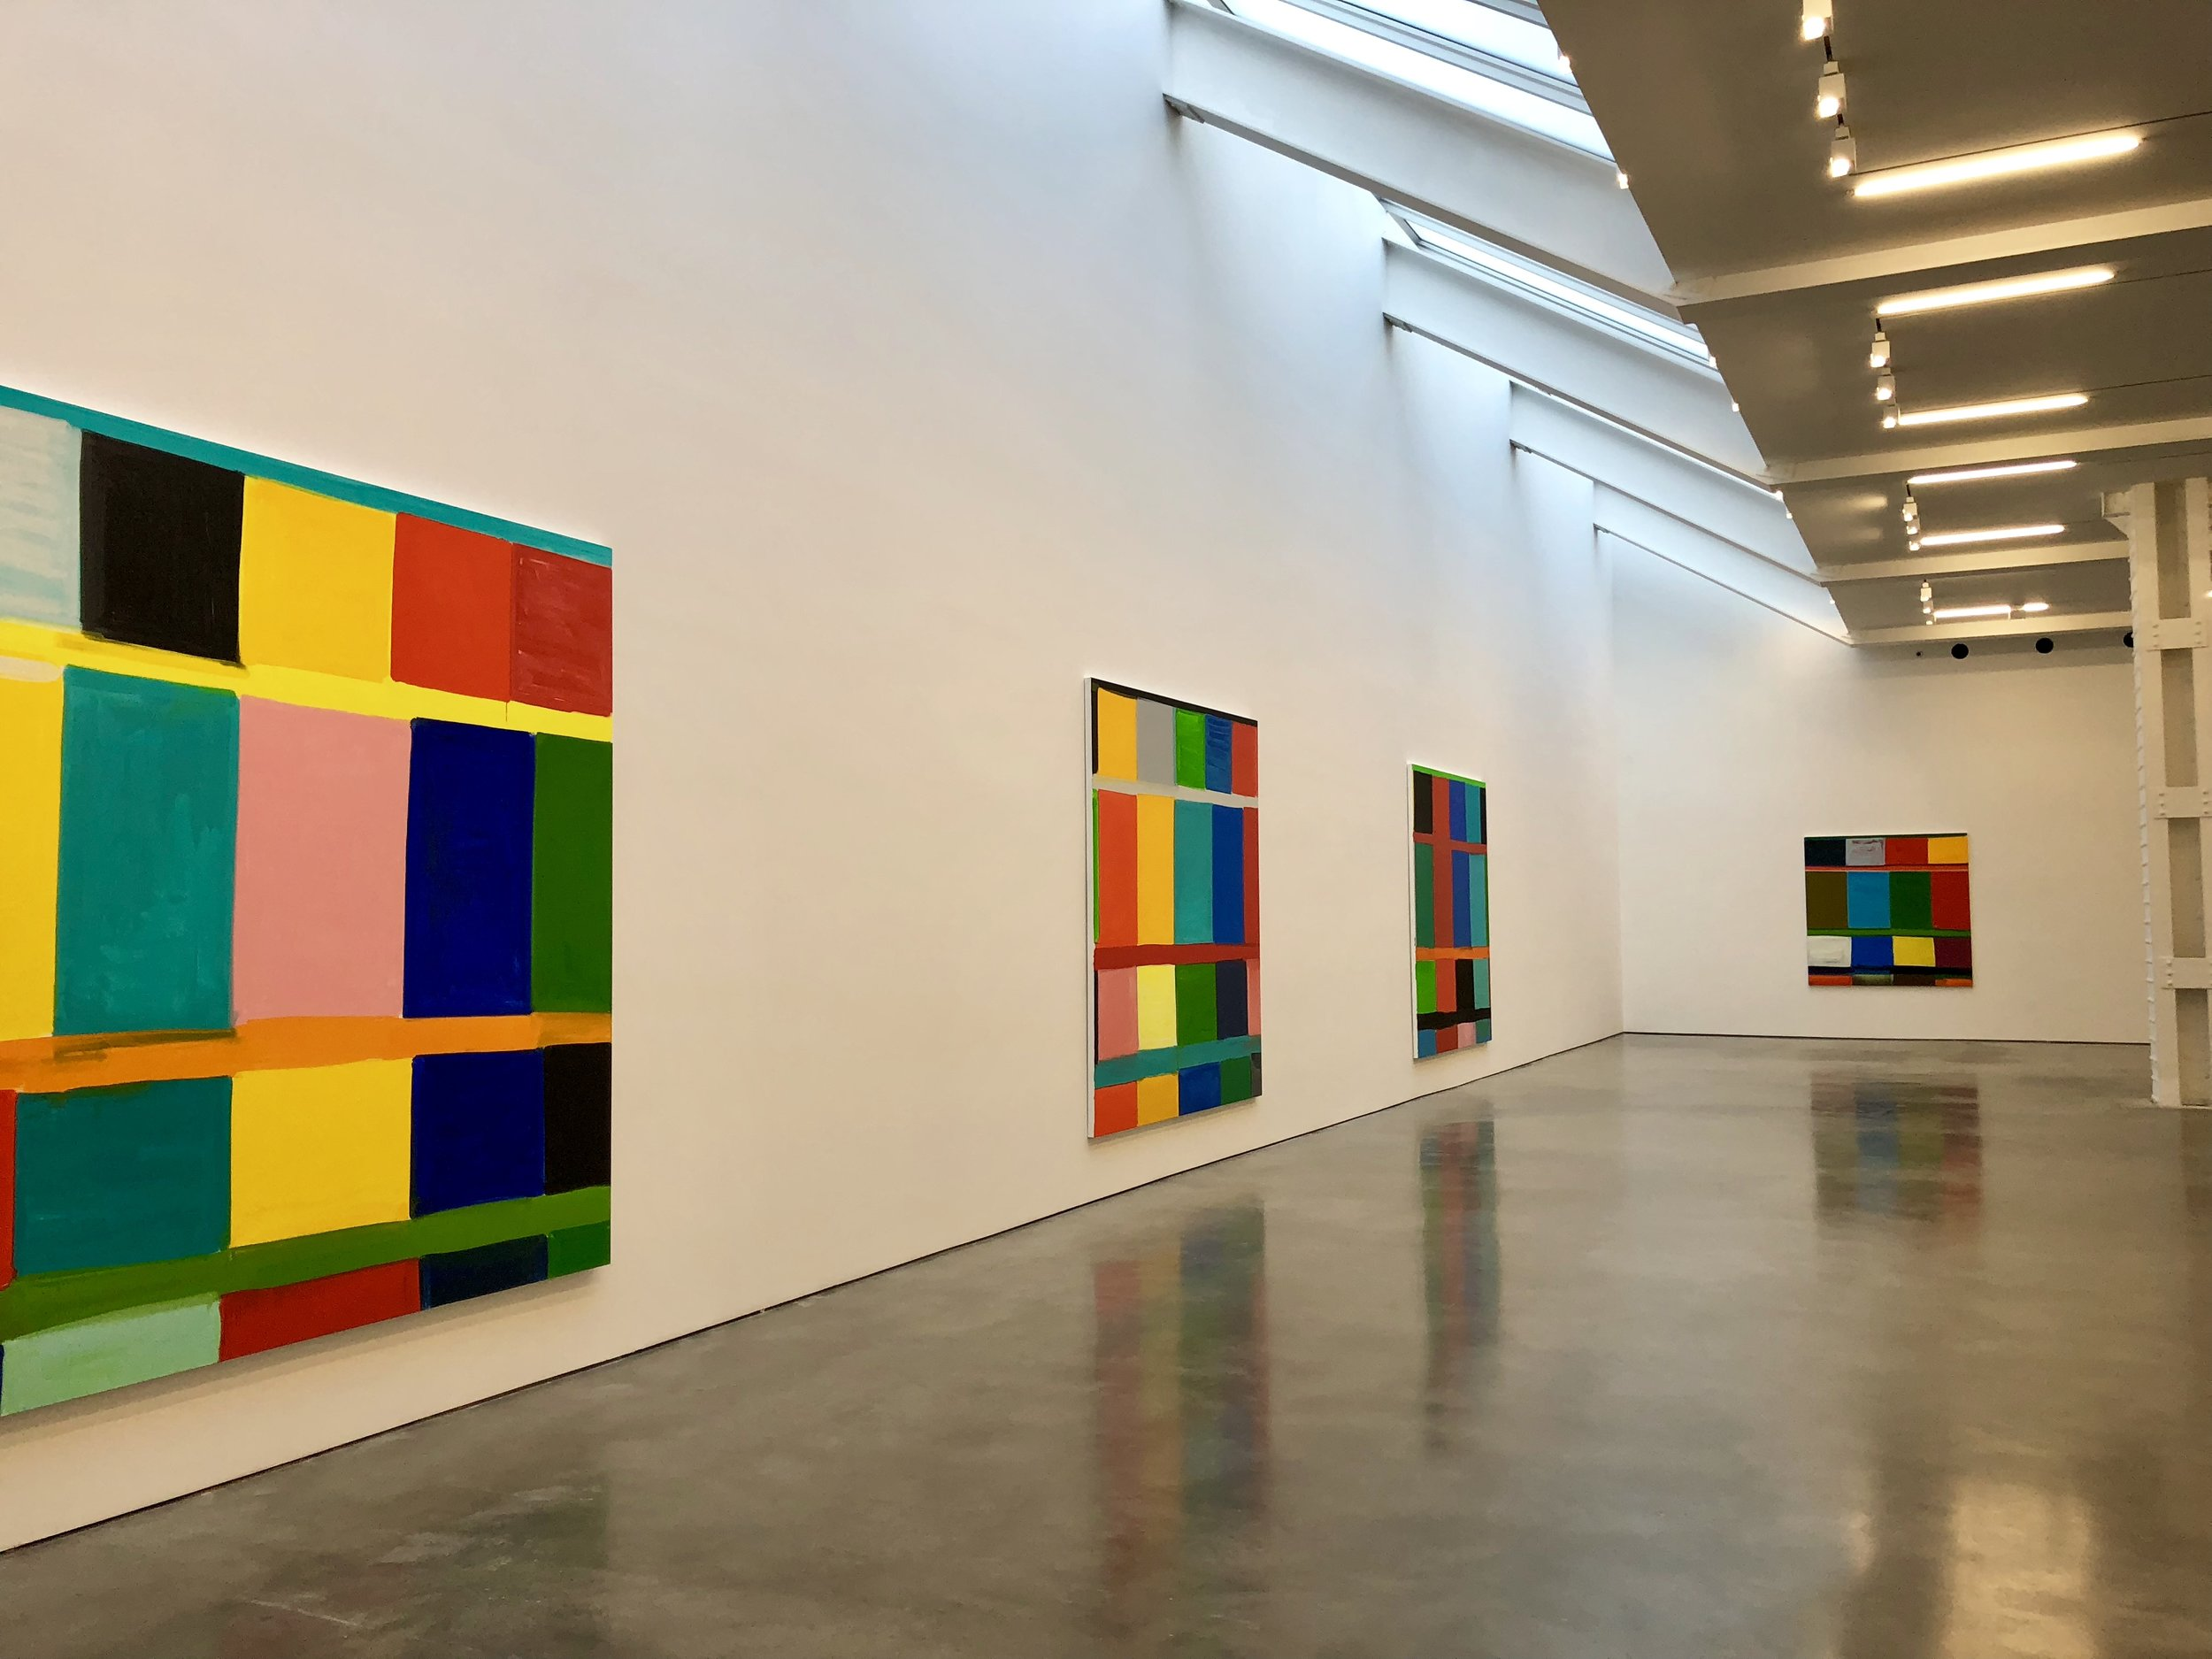 Lisson Gallery, Chelsea, NY, Artwork by Stanley Whitney, photograph by Amie Potsic copyright 2018